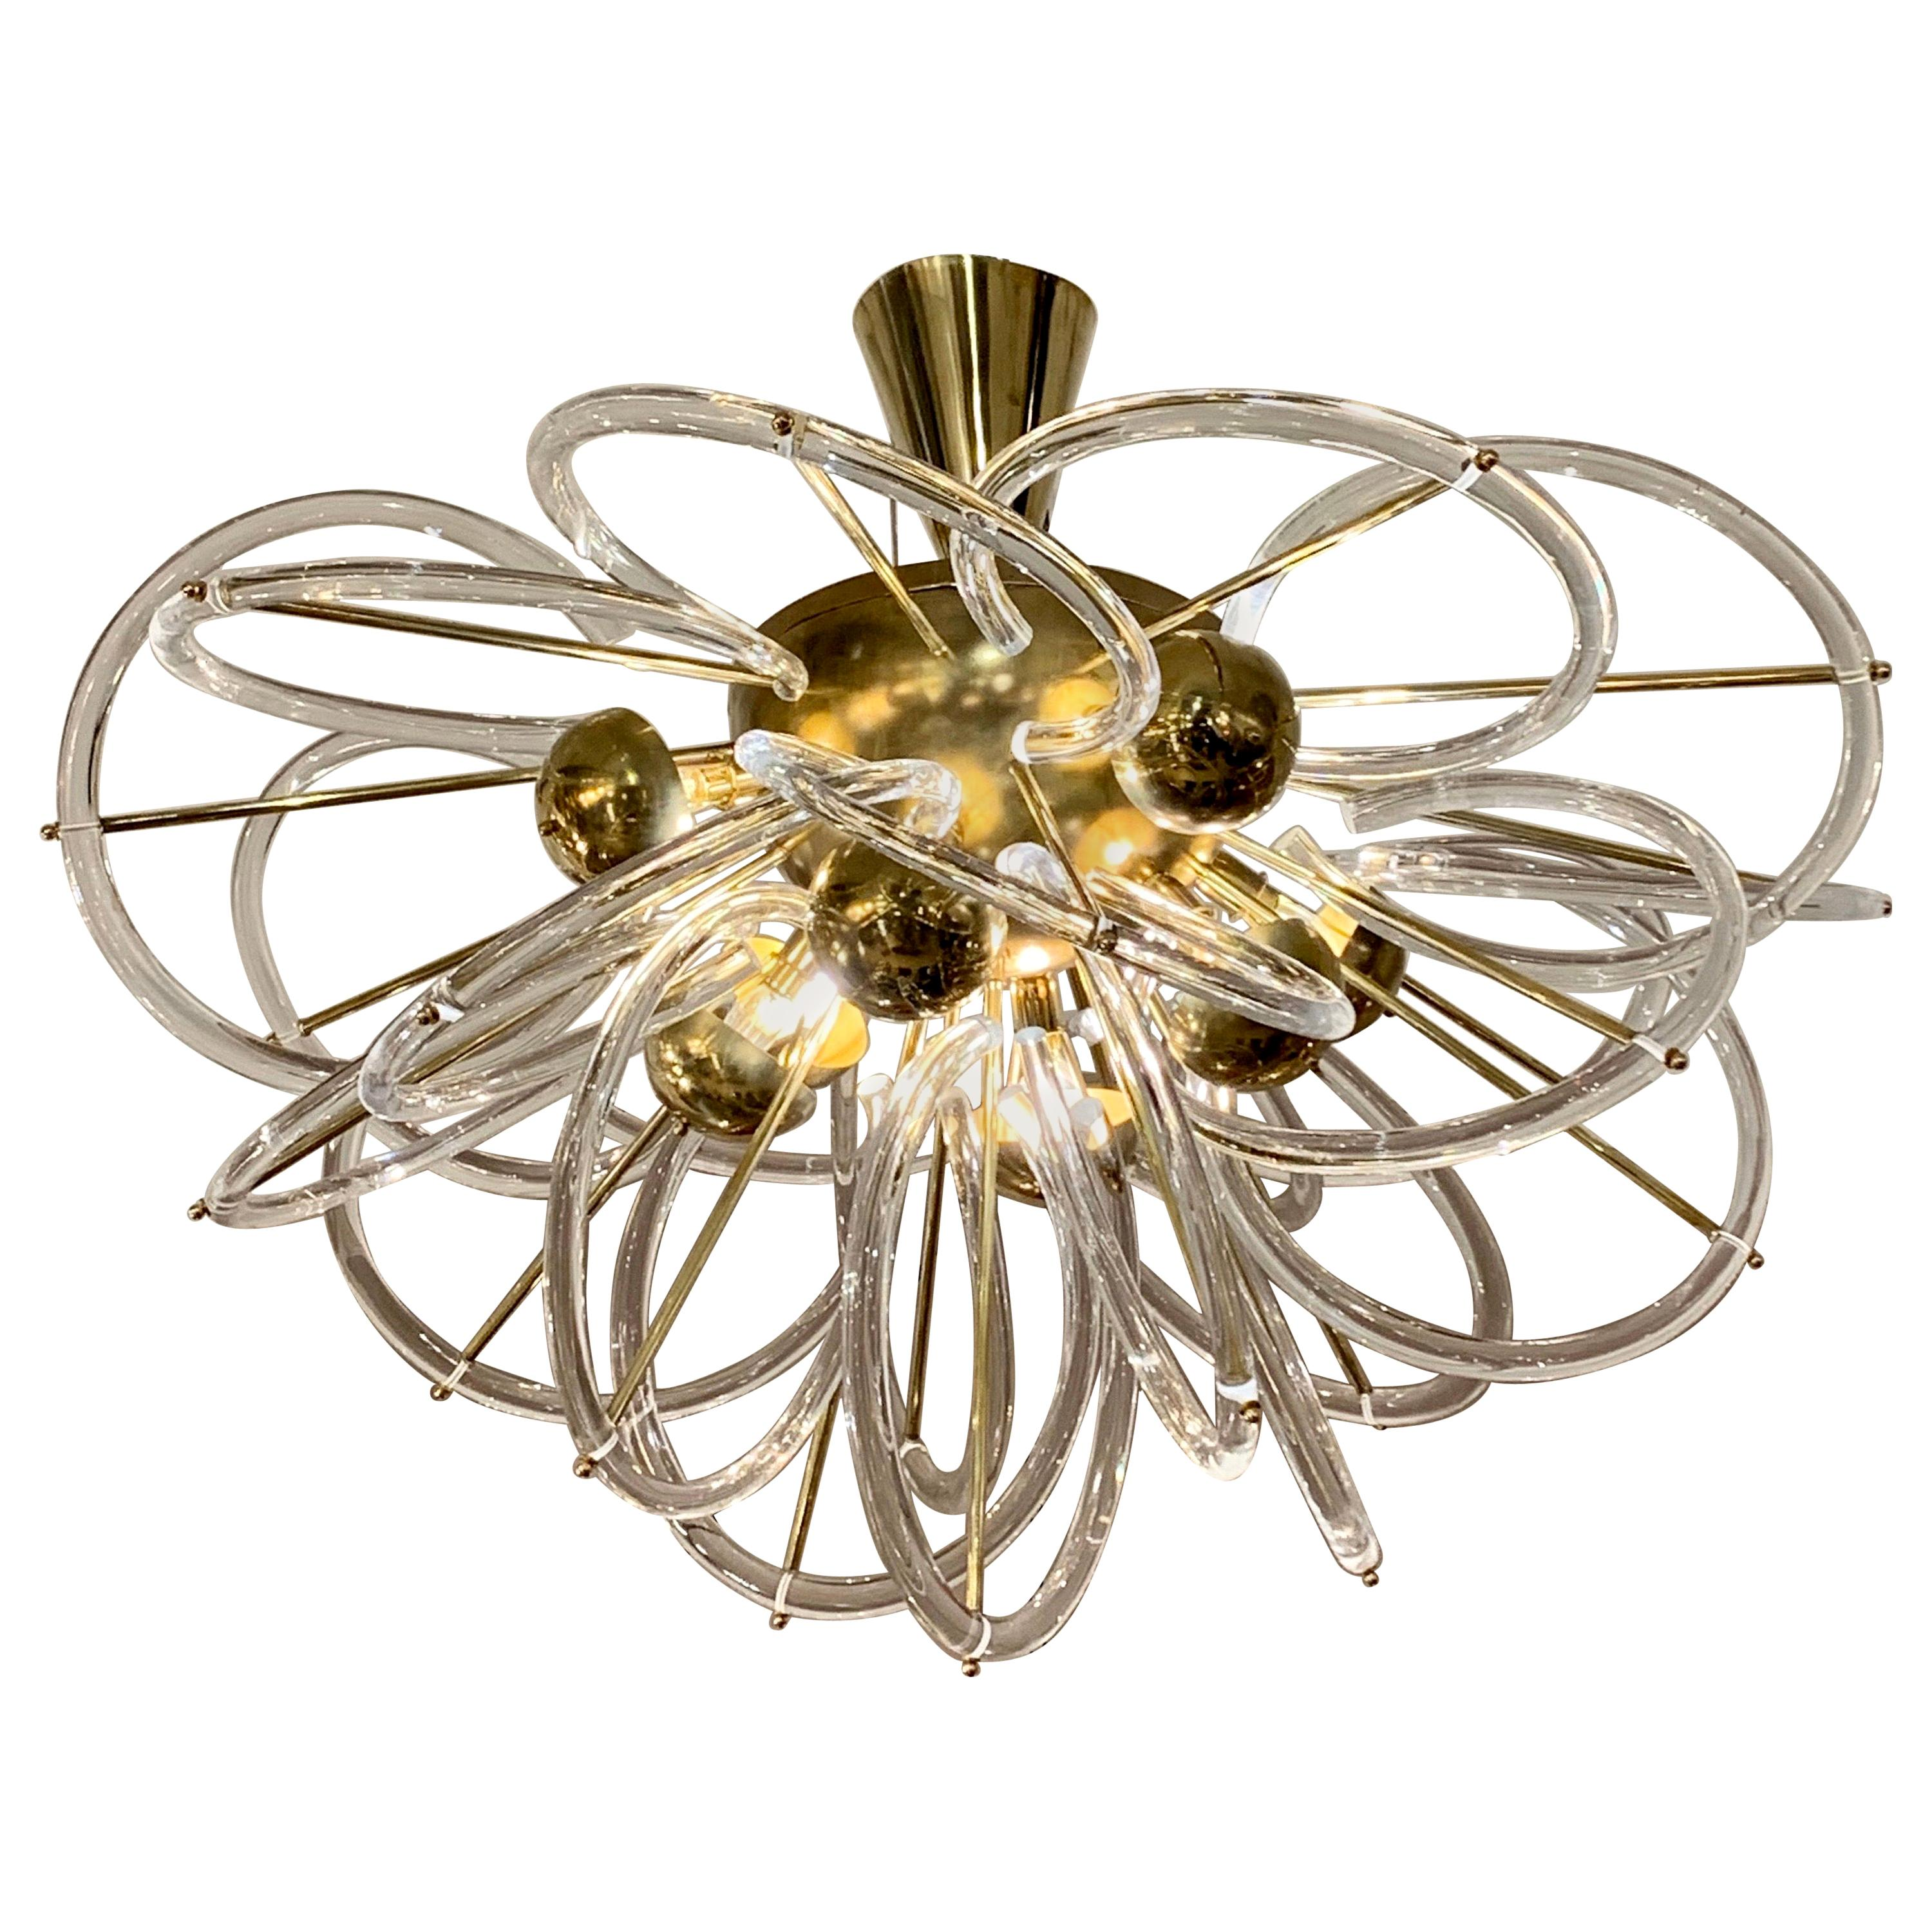 Murano Glass Chandelier with Clear Glass Circles and Brass Structure, 1970s